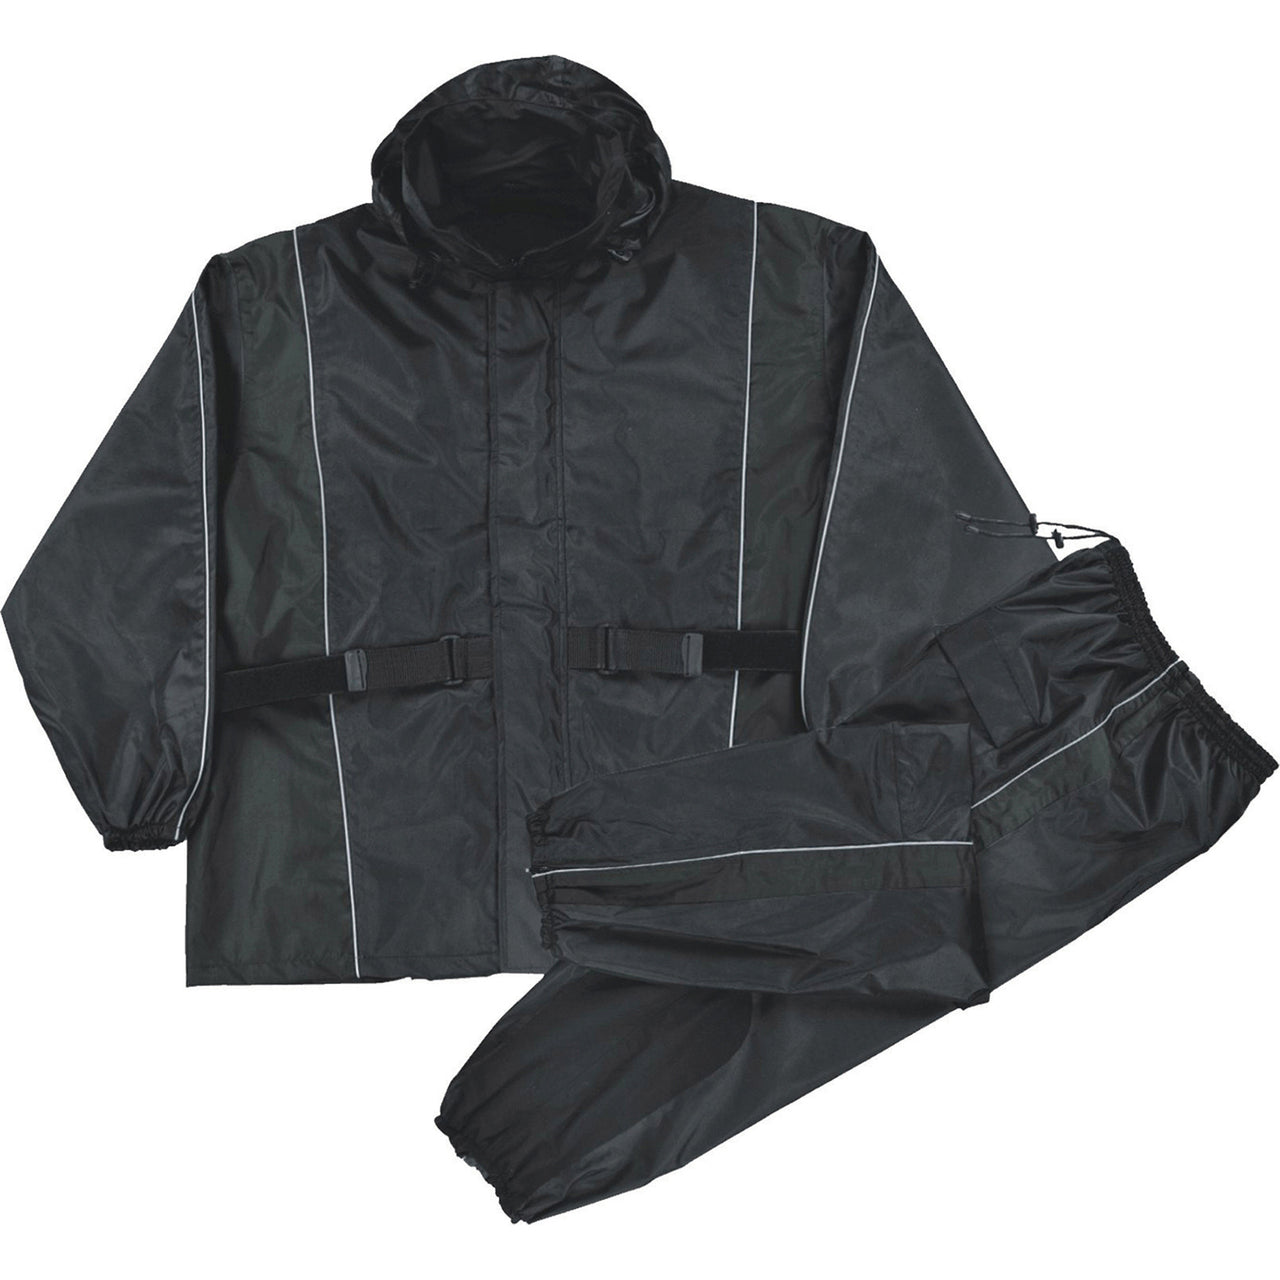 Men's Black Waterproof Rain Suit w/ Reflective Piping & Heat Guard - HighwayLeather